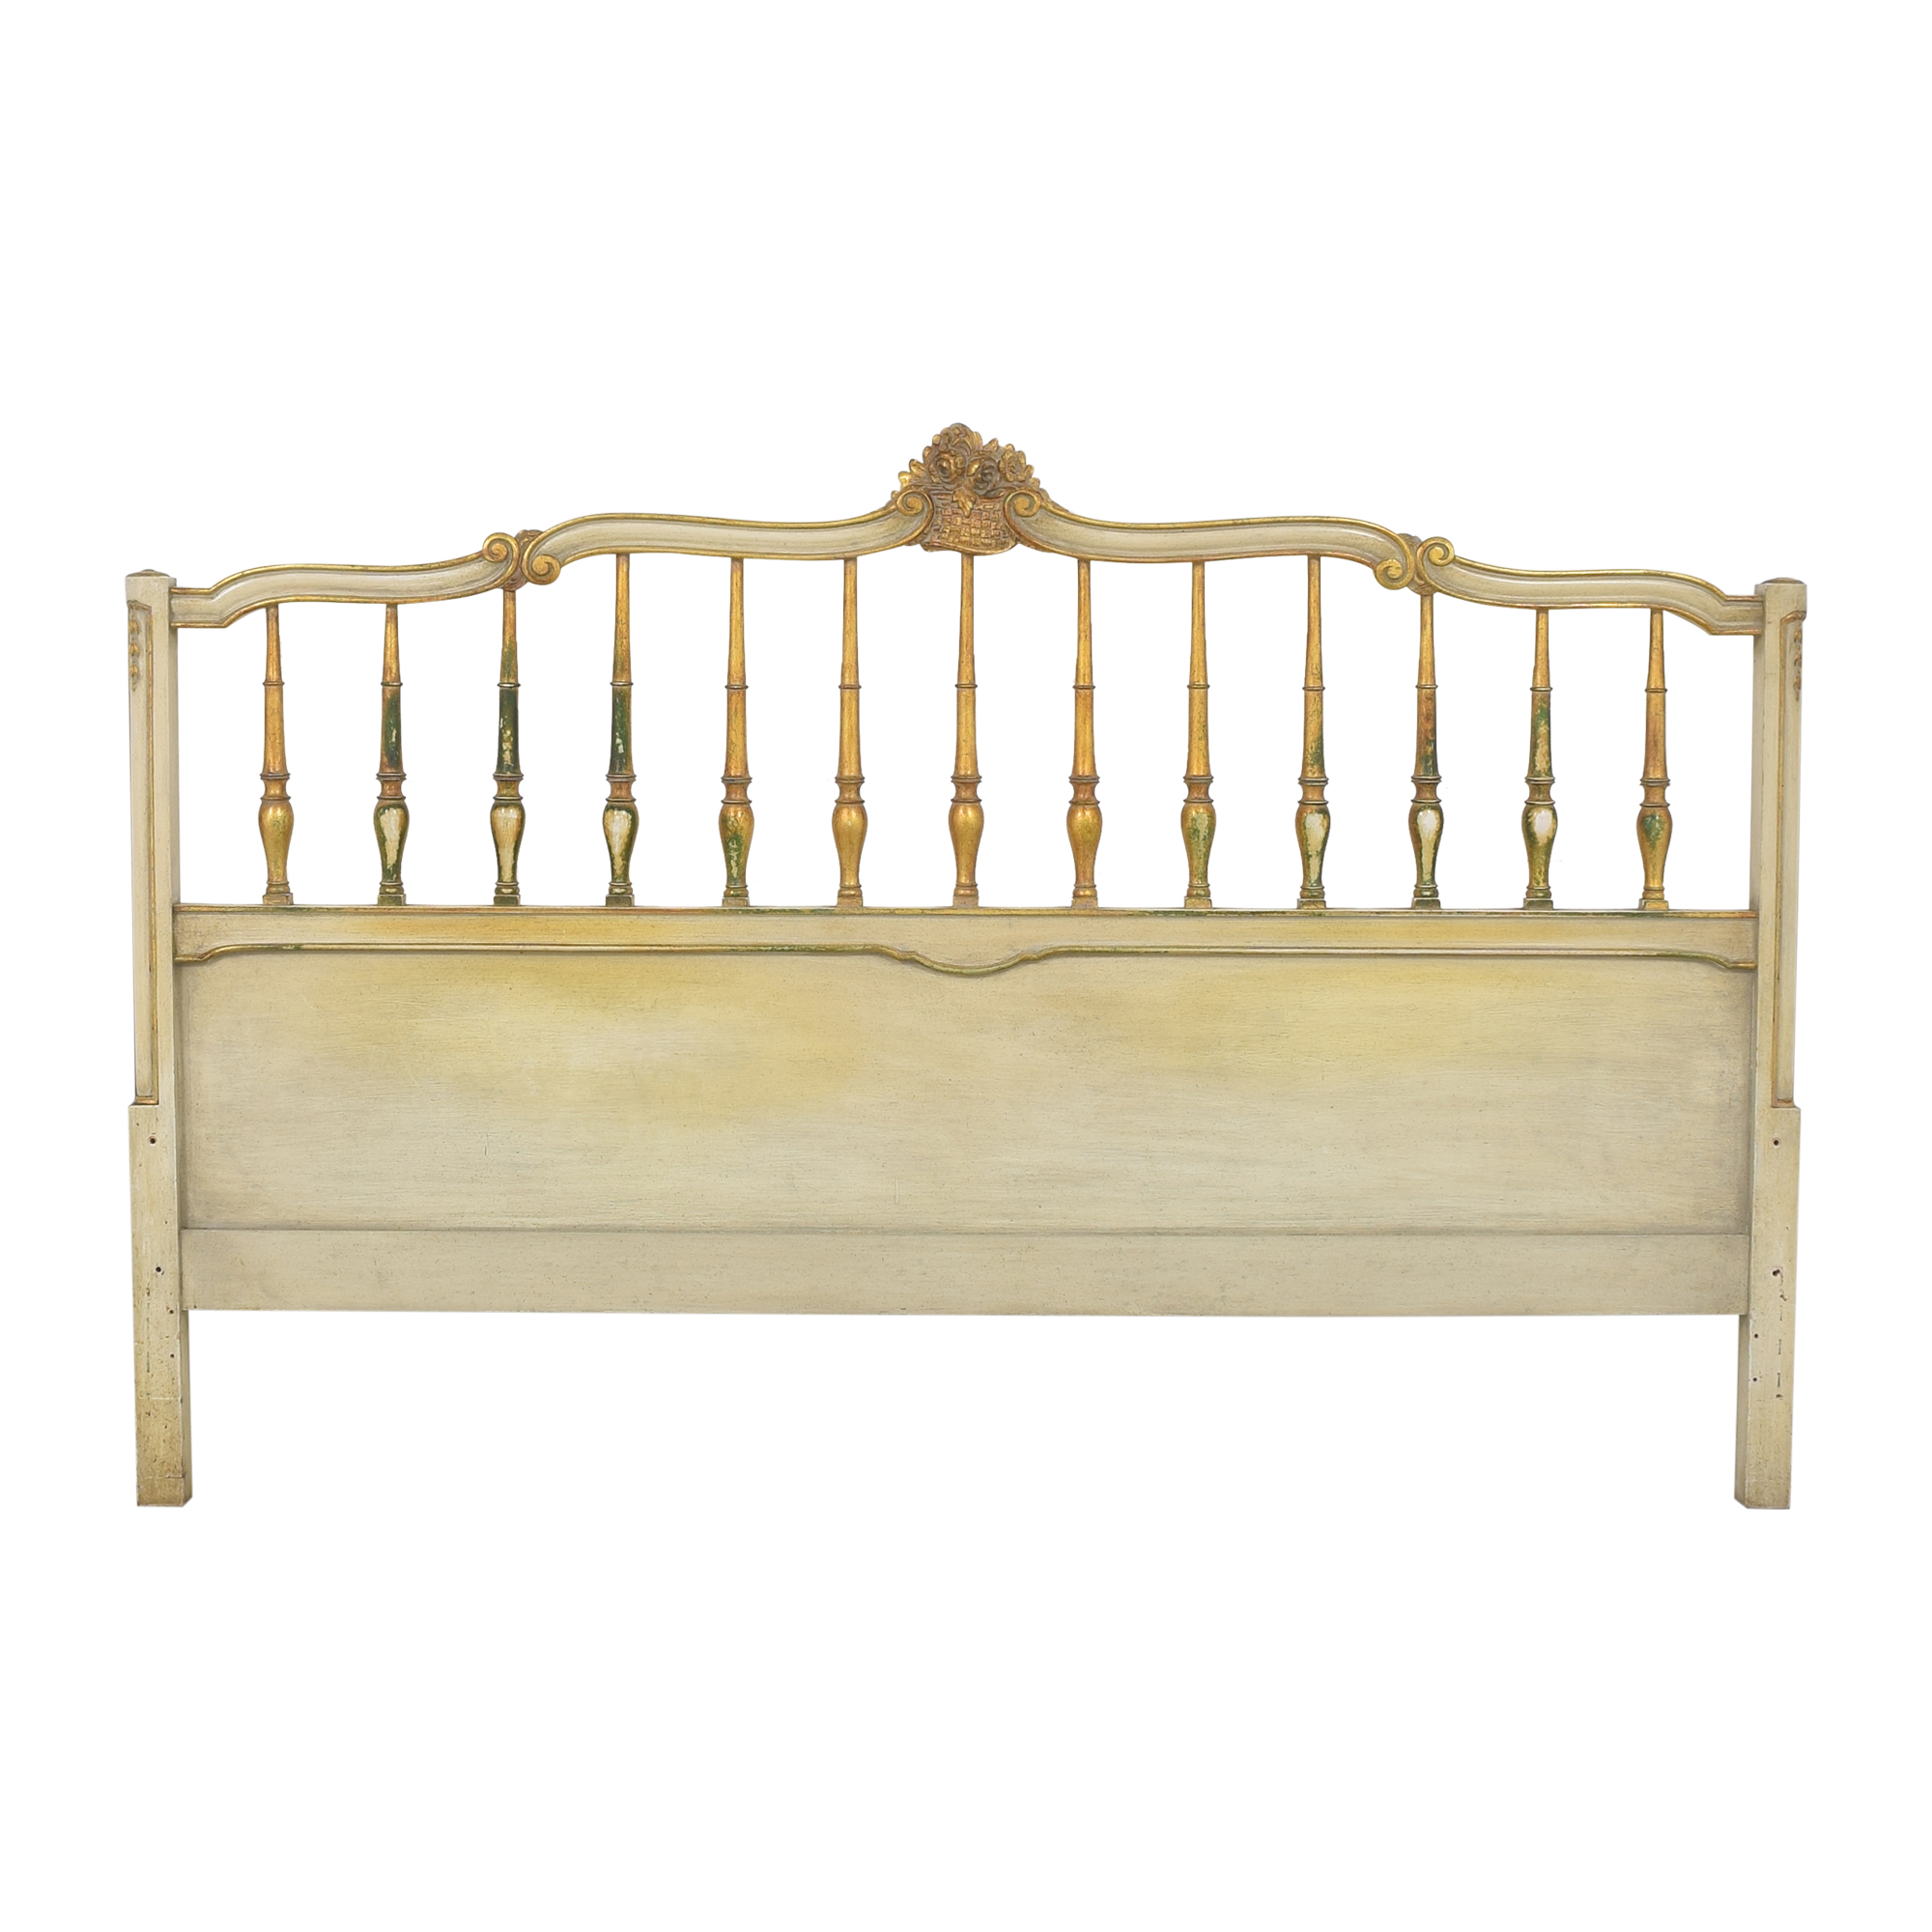 Vintage French-Style King Headboard Headboards